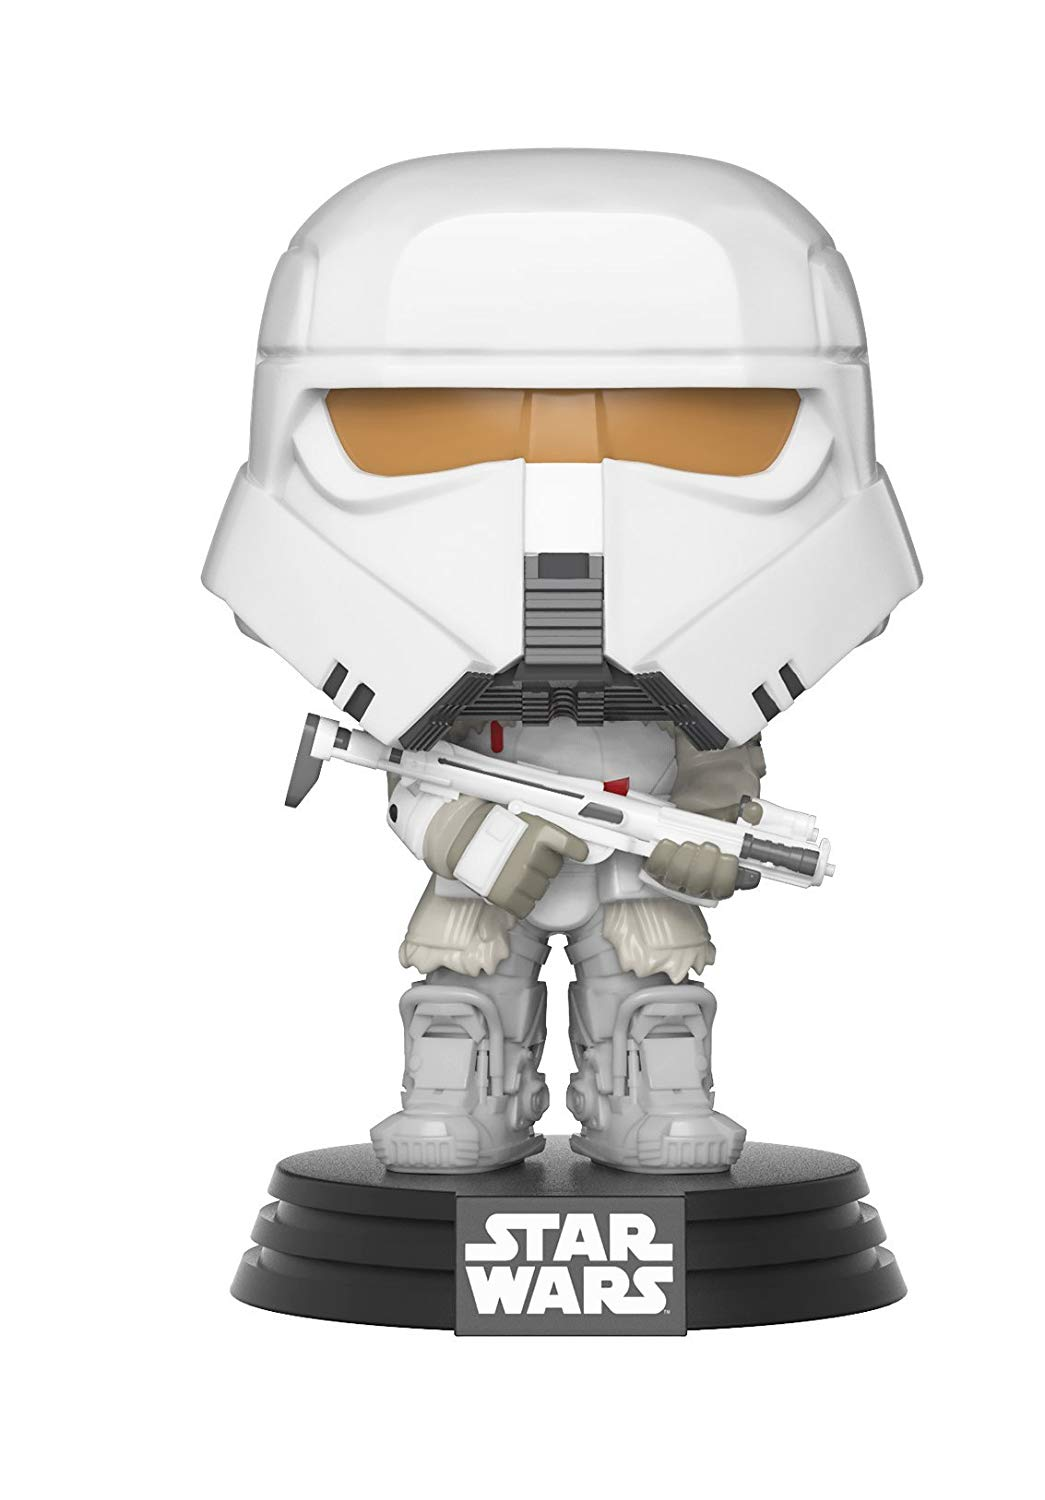 Steve Blum recommends Range Trooper Star Wars: Solo Funko Pop figure